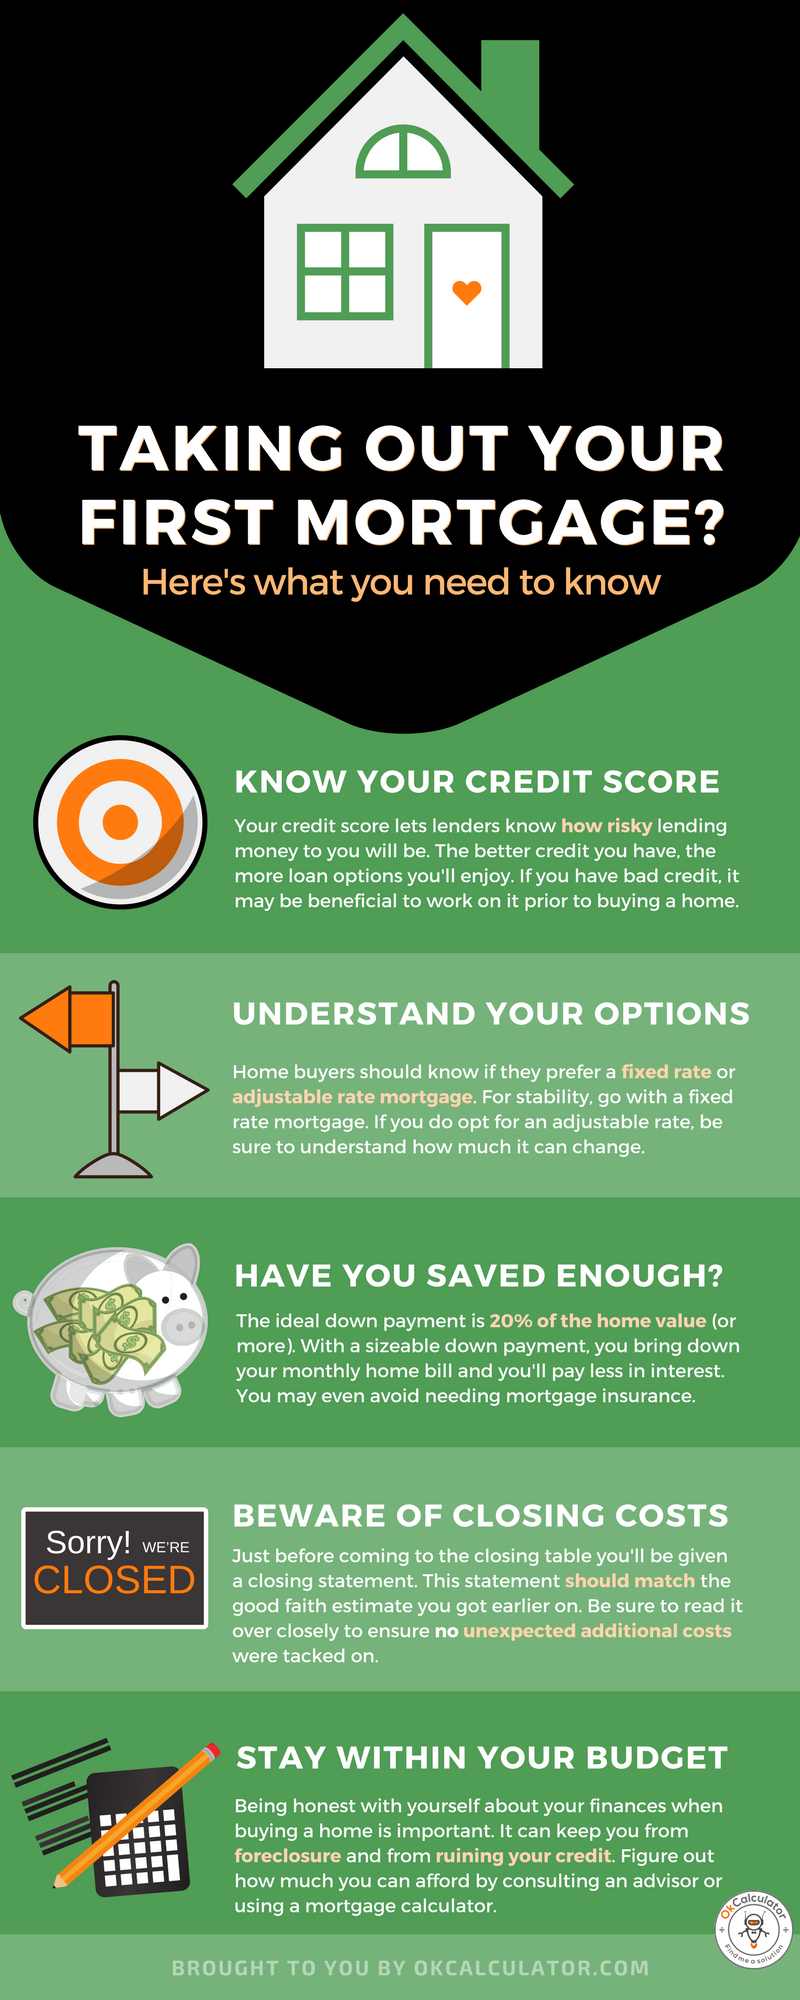 Workout Your Credit And Budget For Your Home Loan Before Shopping Mortgage Mortgageloan Financialplanning Financ Online Mortgage Home Loans Mortgage Tips